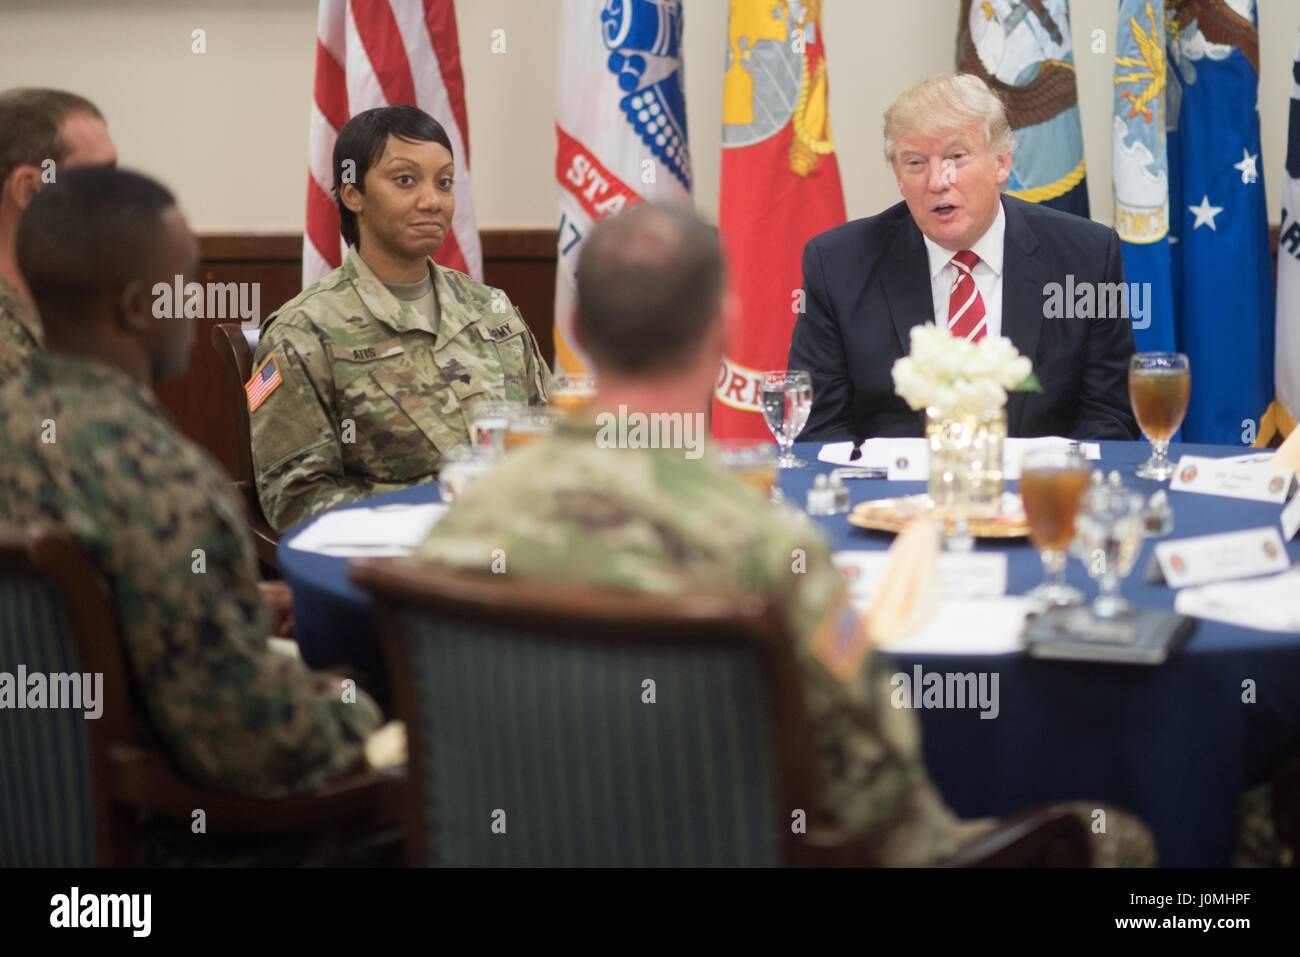 President Donald Trump has lunch with troops while visiting US Central Command and US Special Operations Command Stock Photo